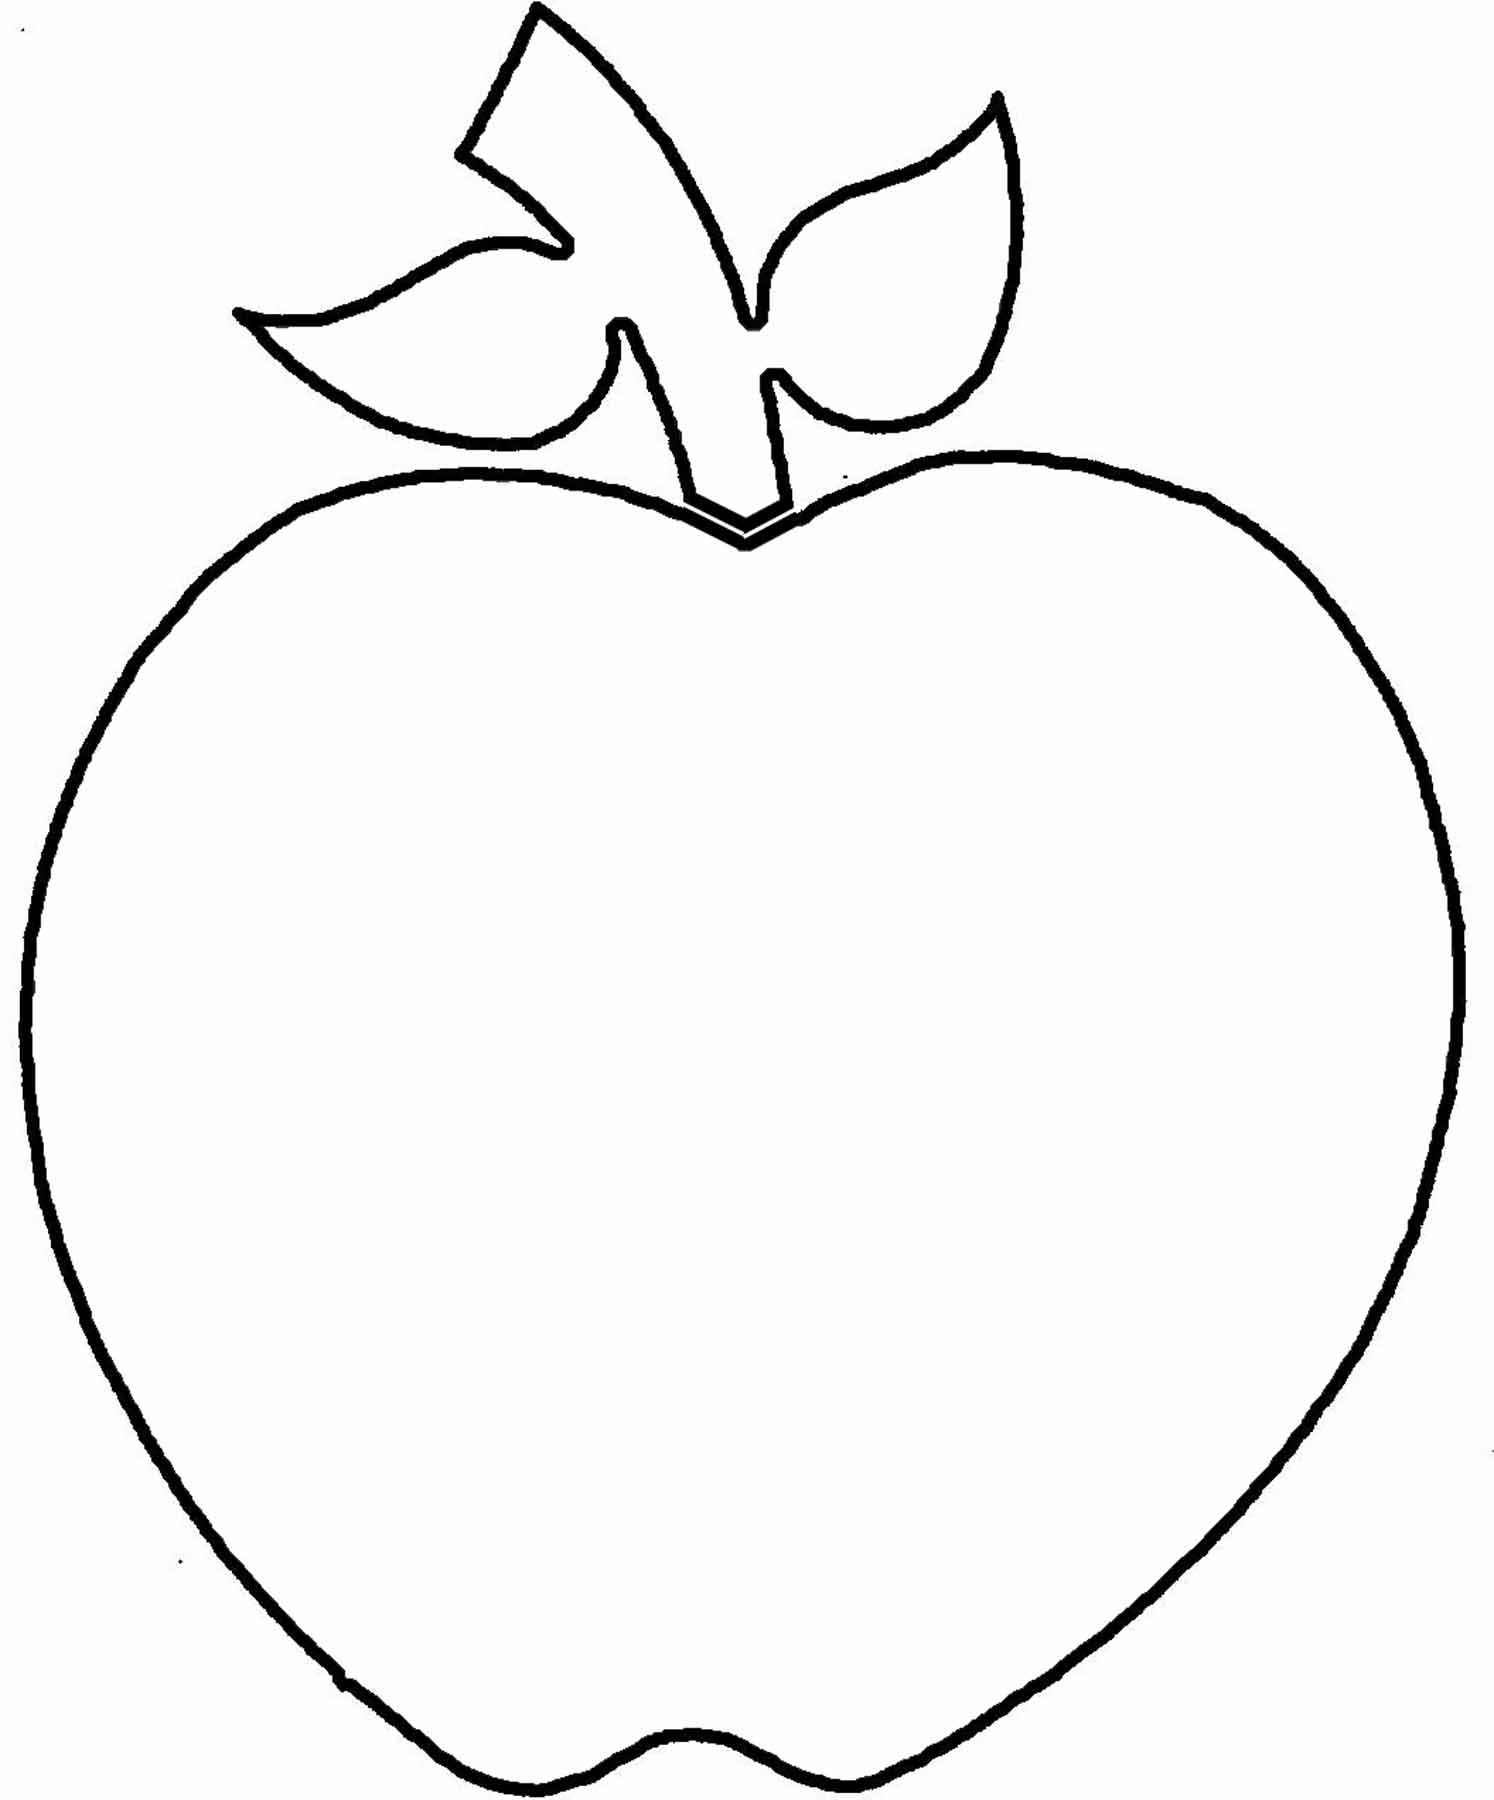 1494x1800 Apple Outline Clip Art Many Interesting Cliparts